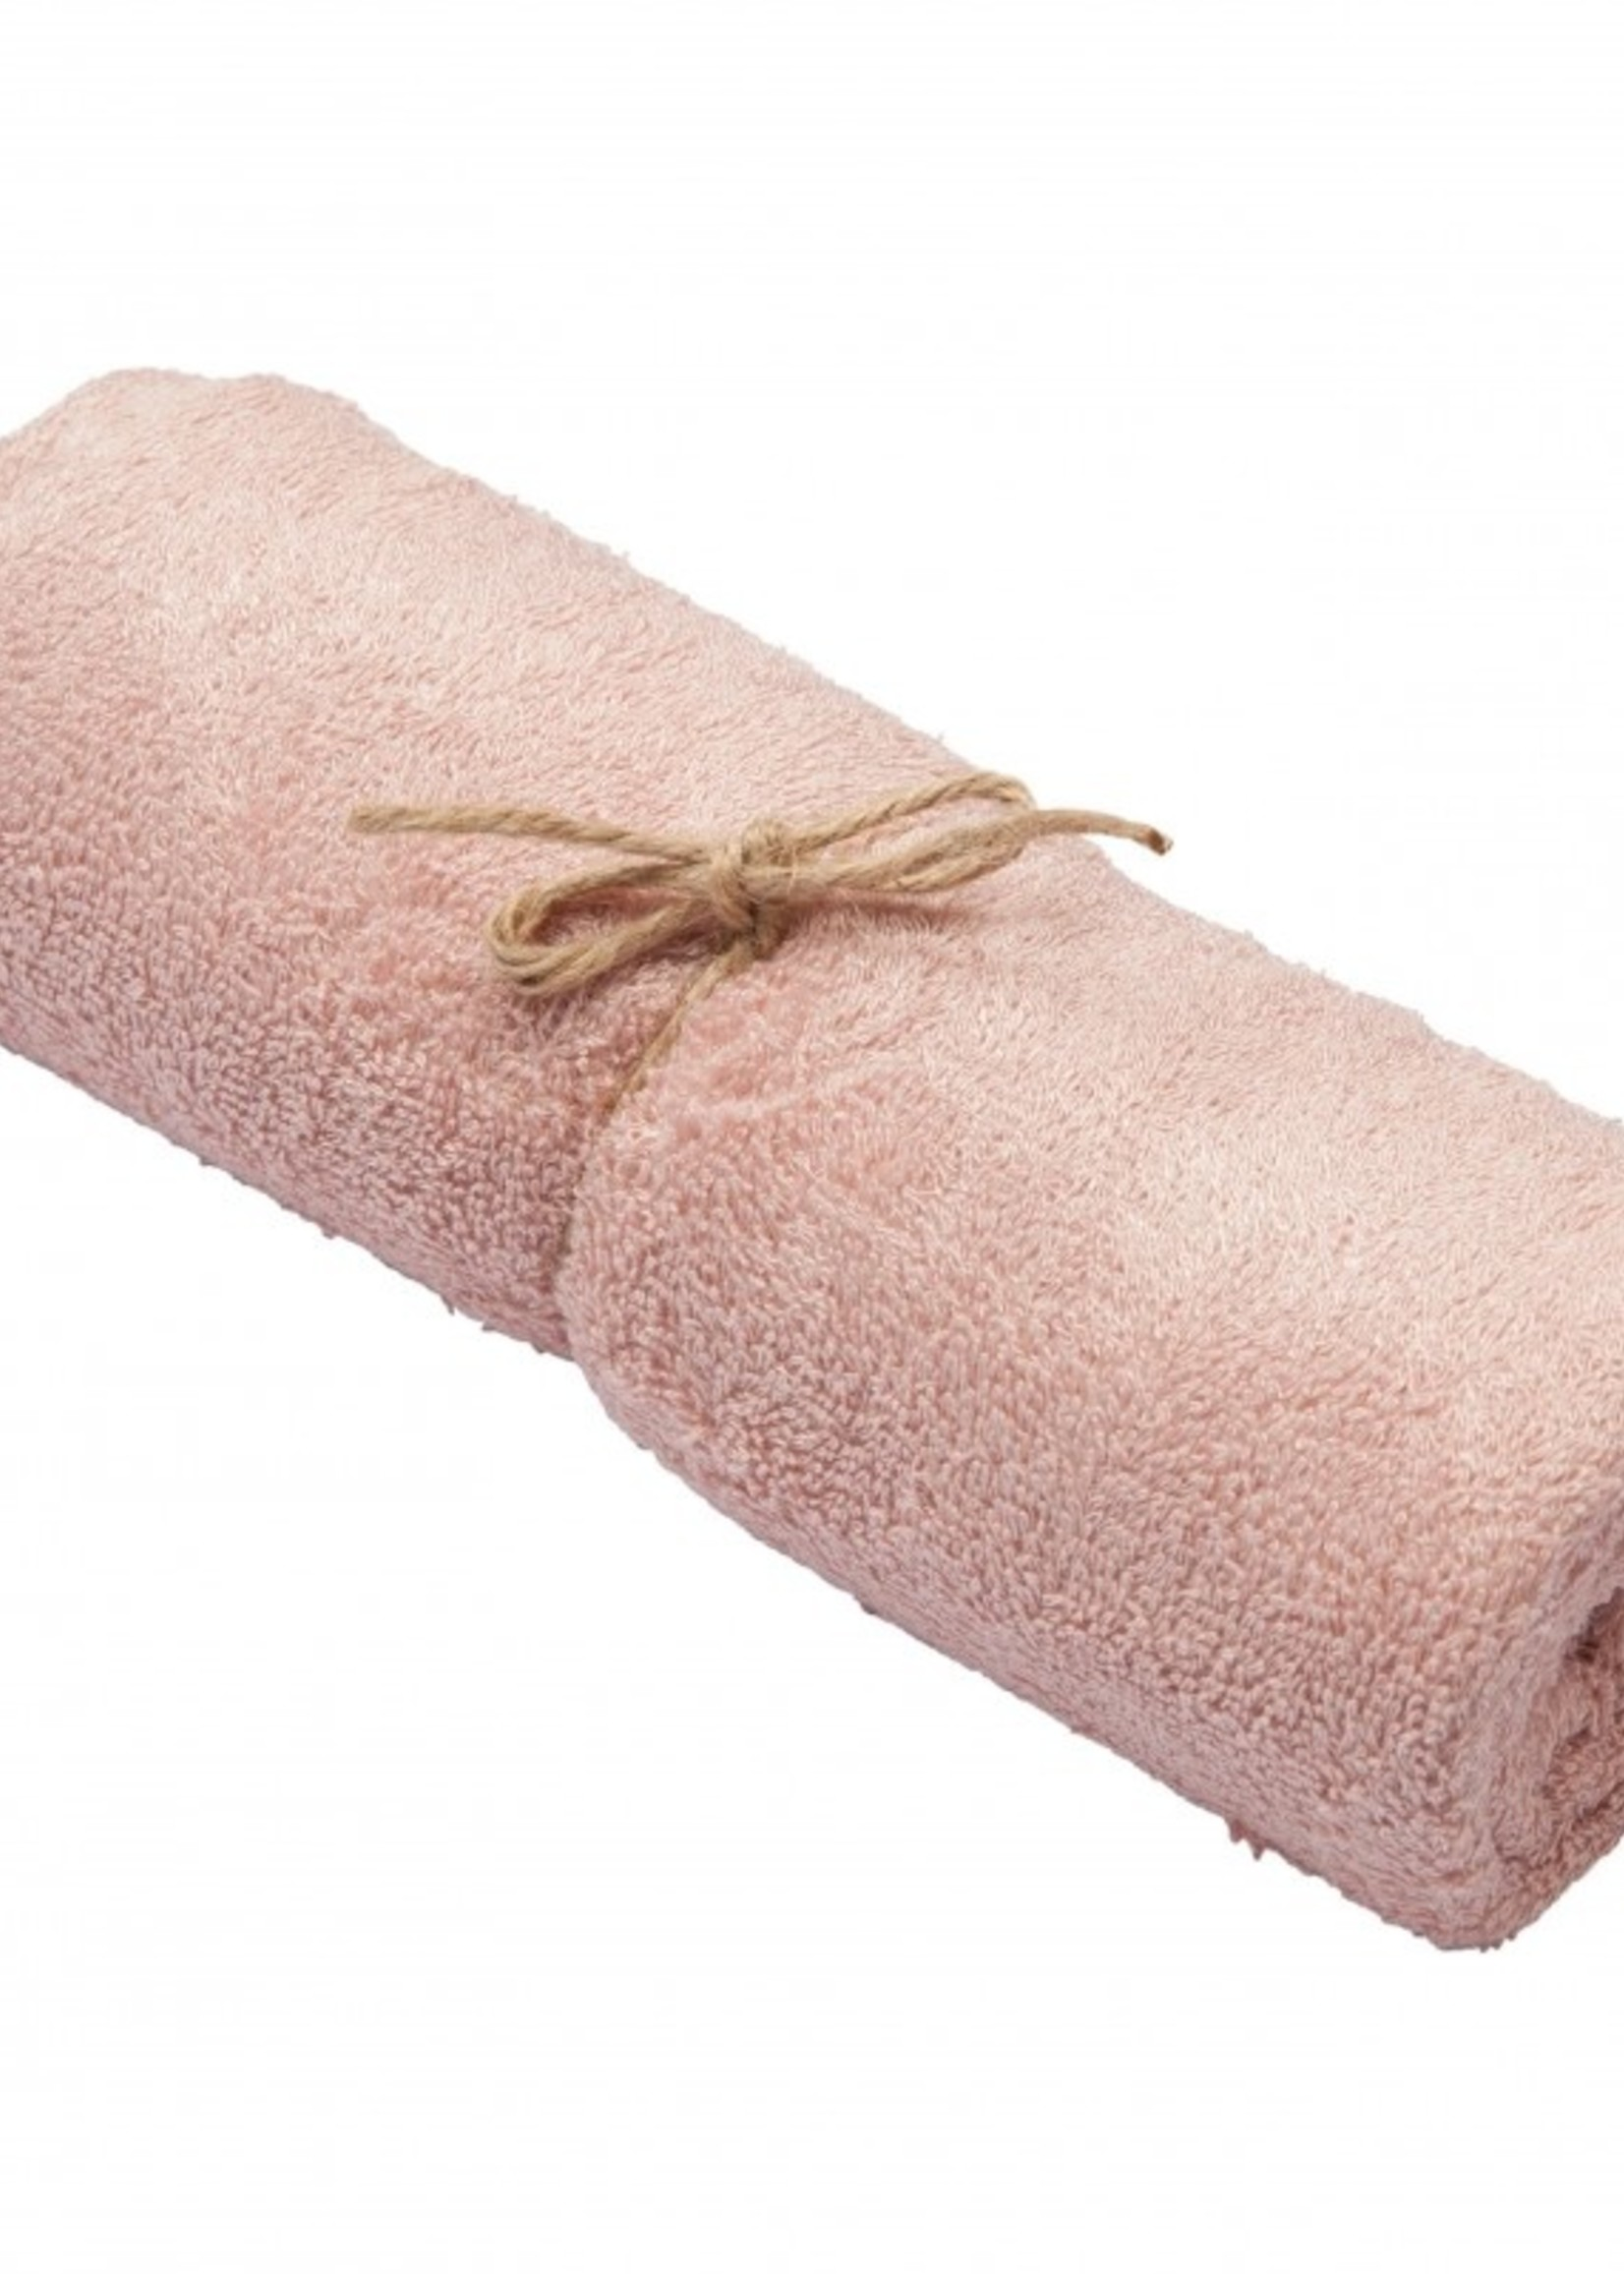 Timboo Towel Large - Misty Rose